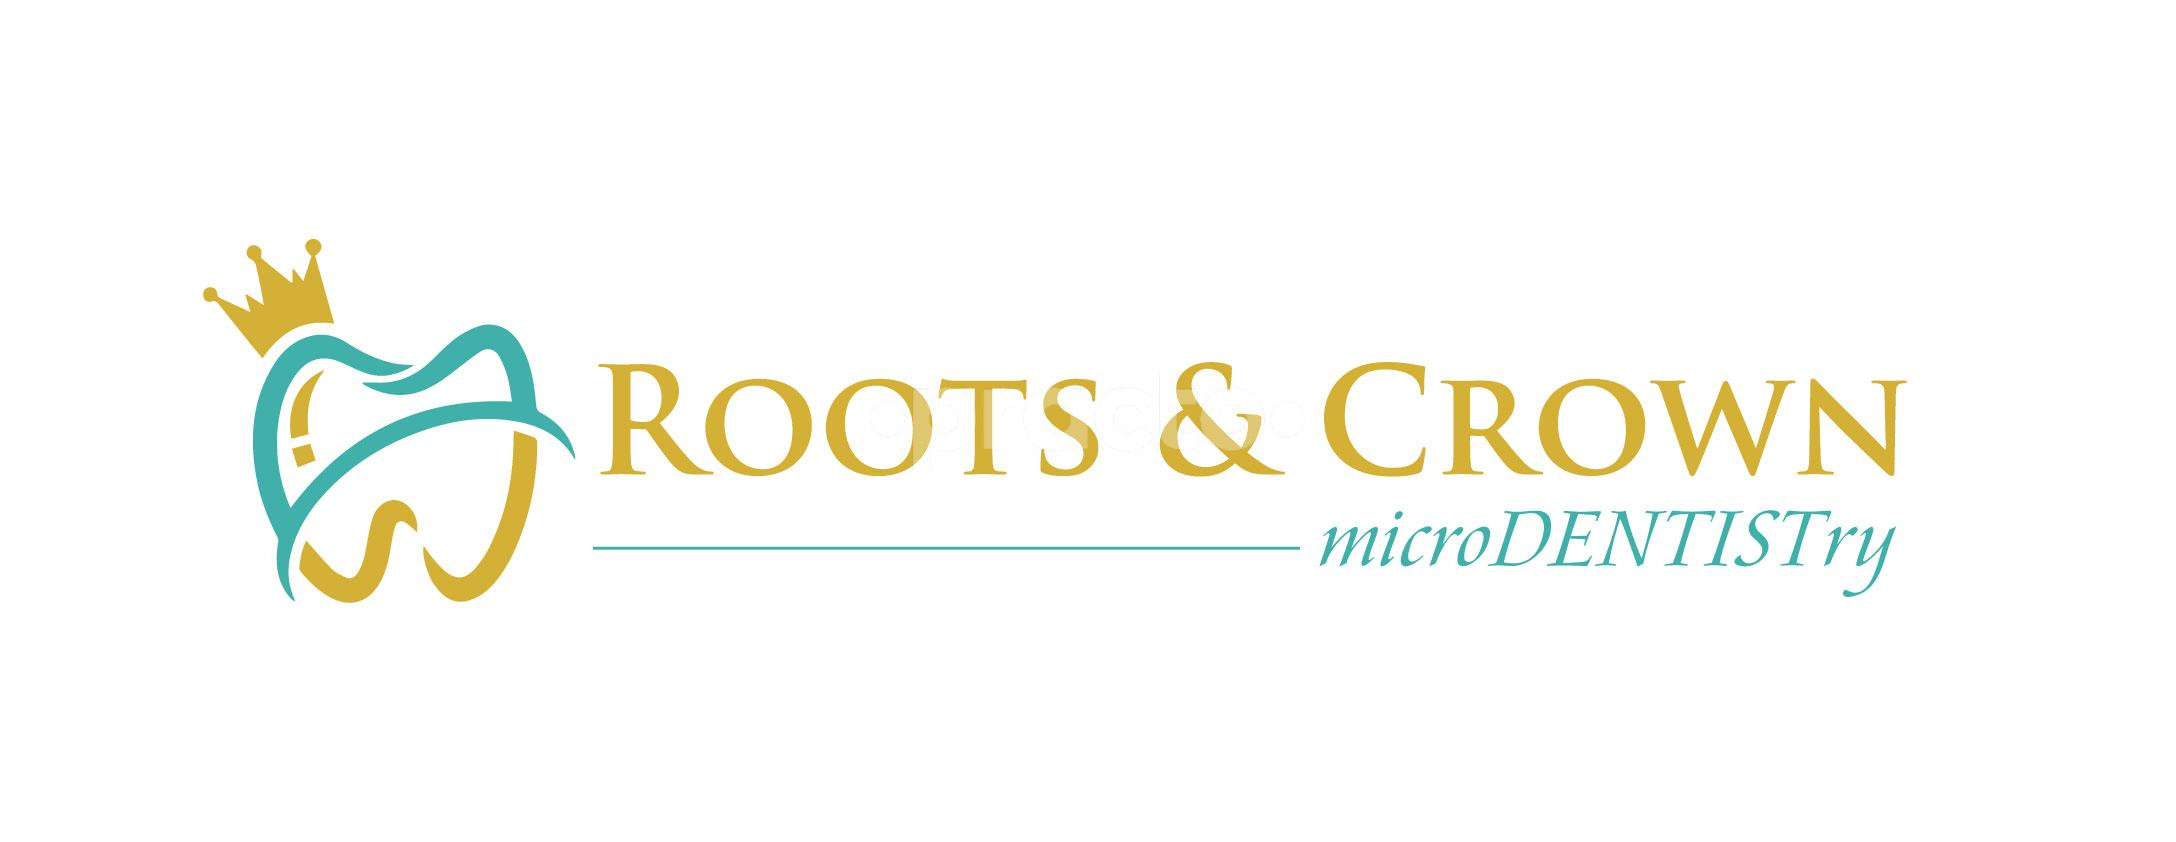 Roots and Crown Microdentistry